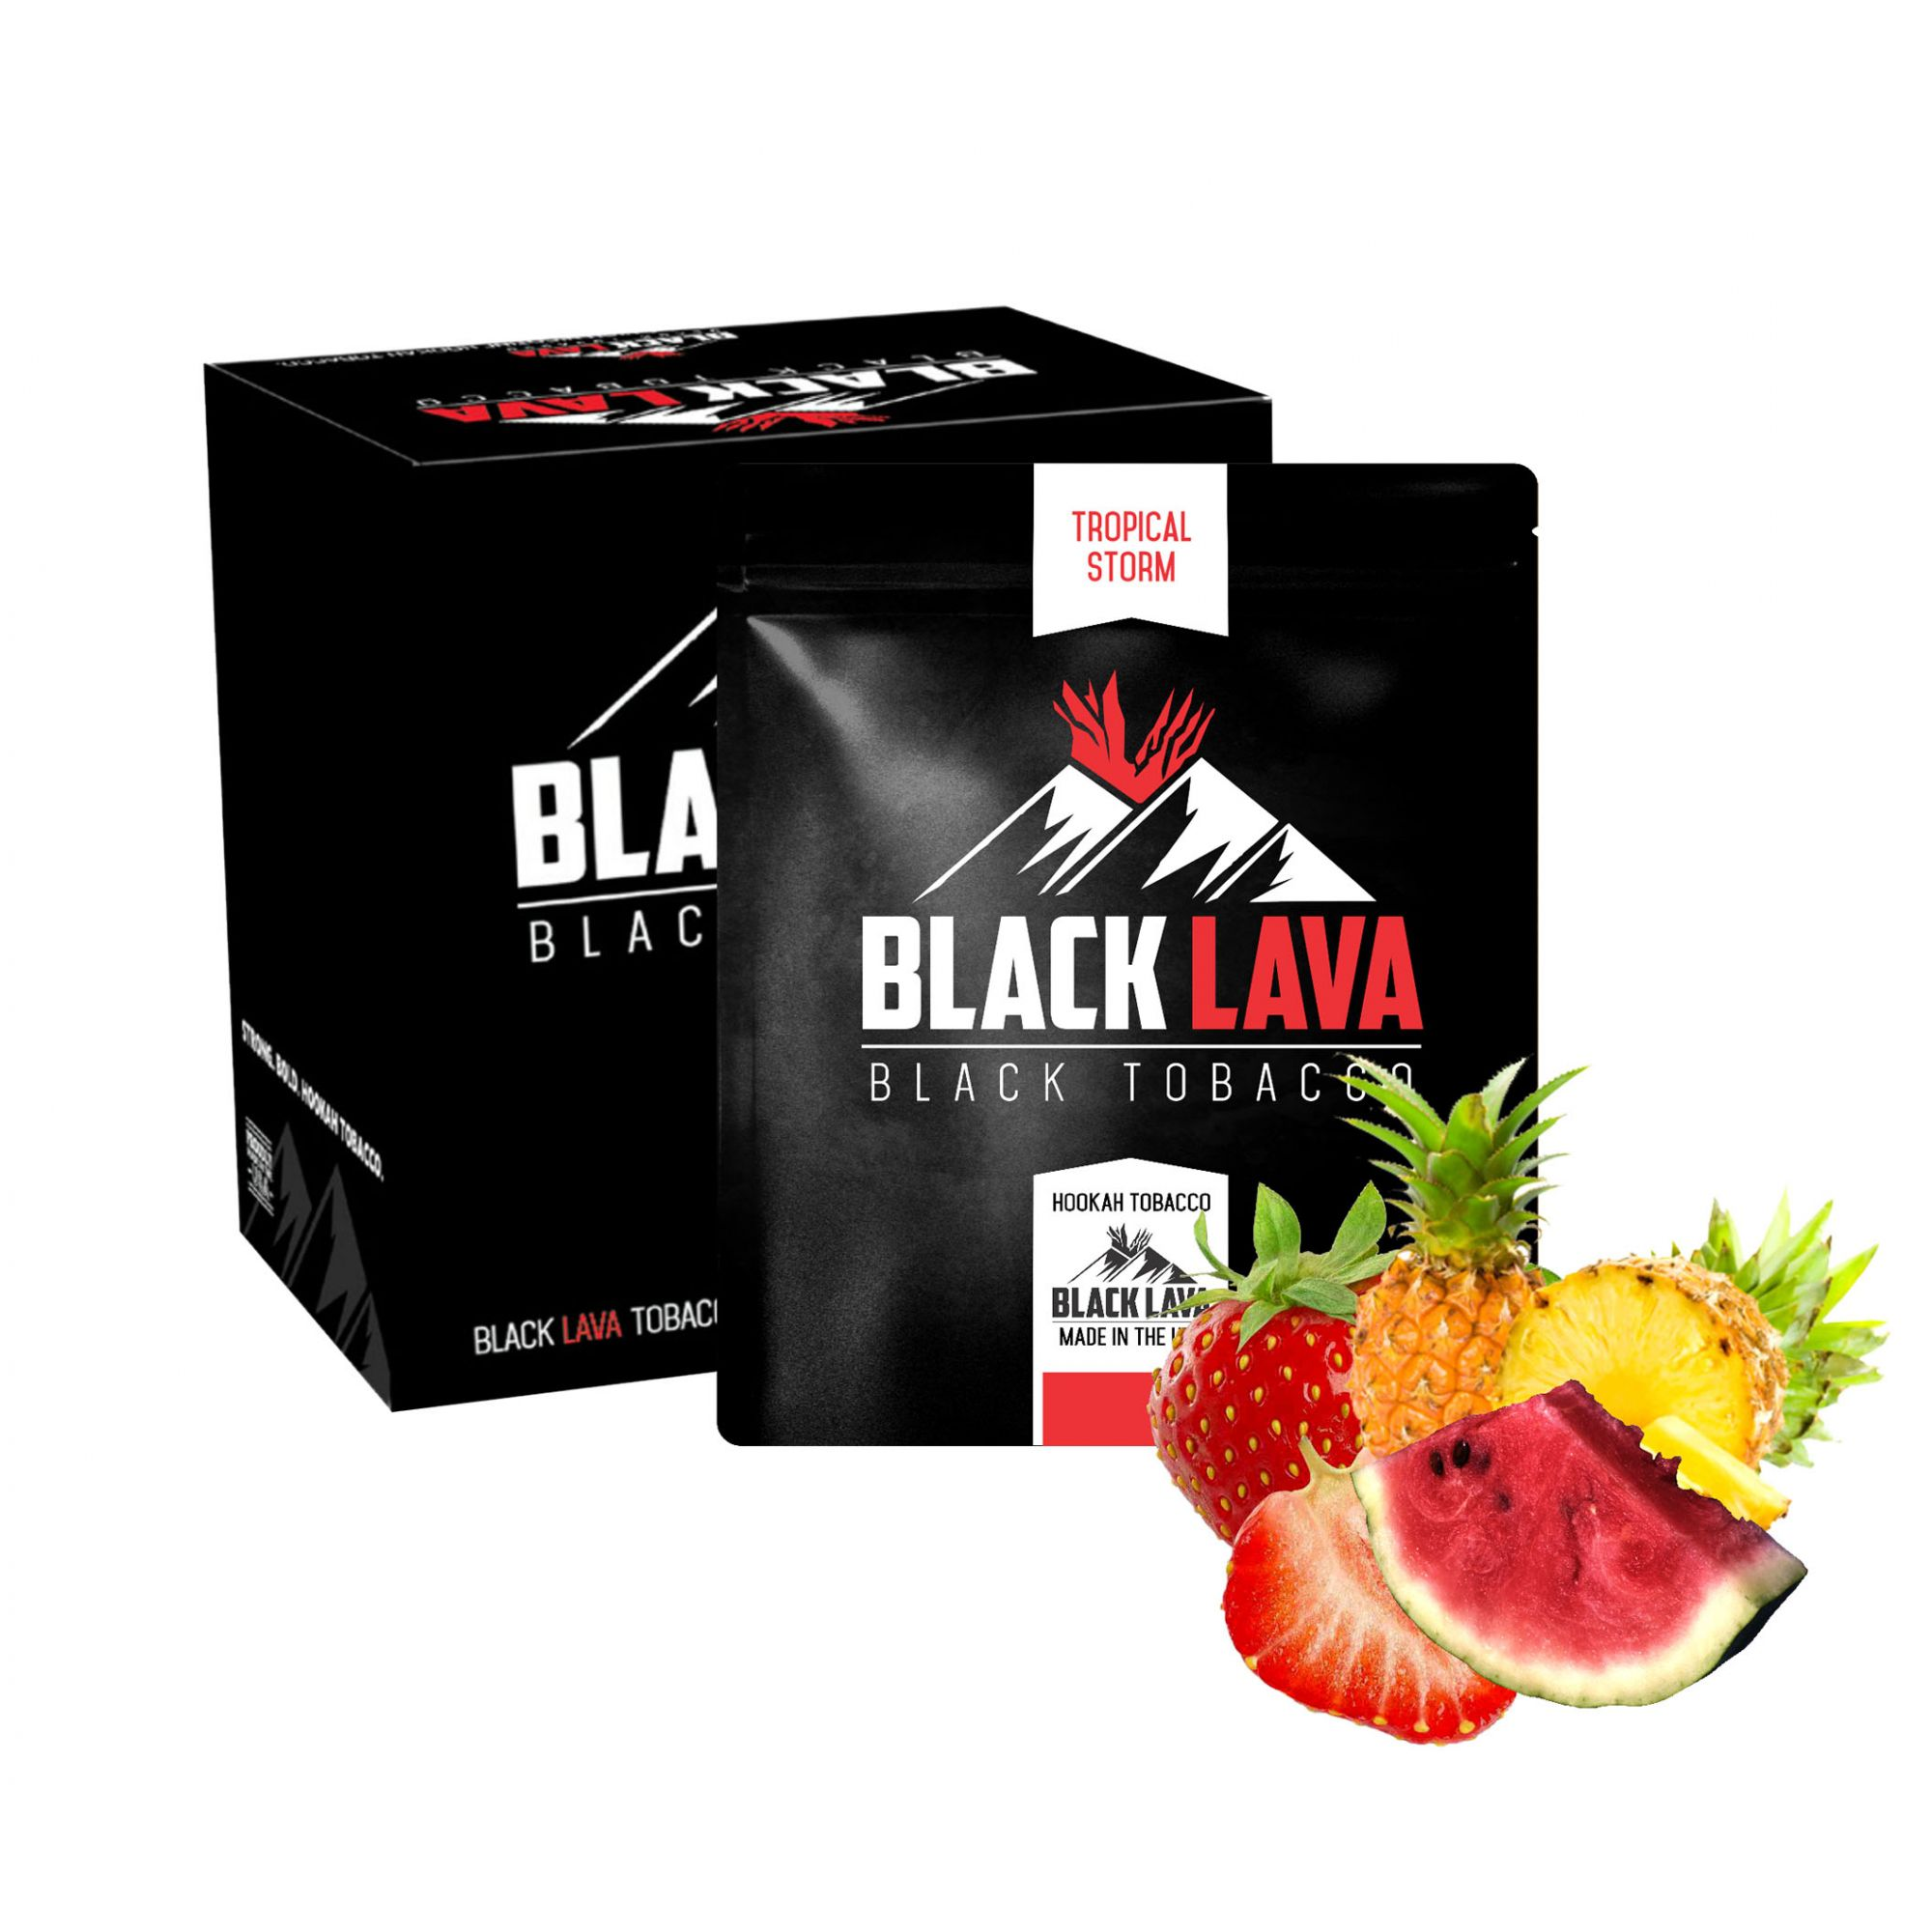 Black Lava - Tropical Storm 200g